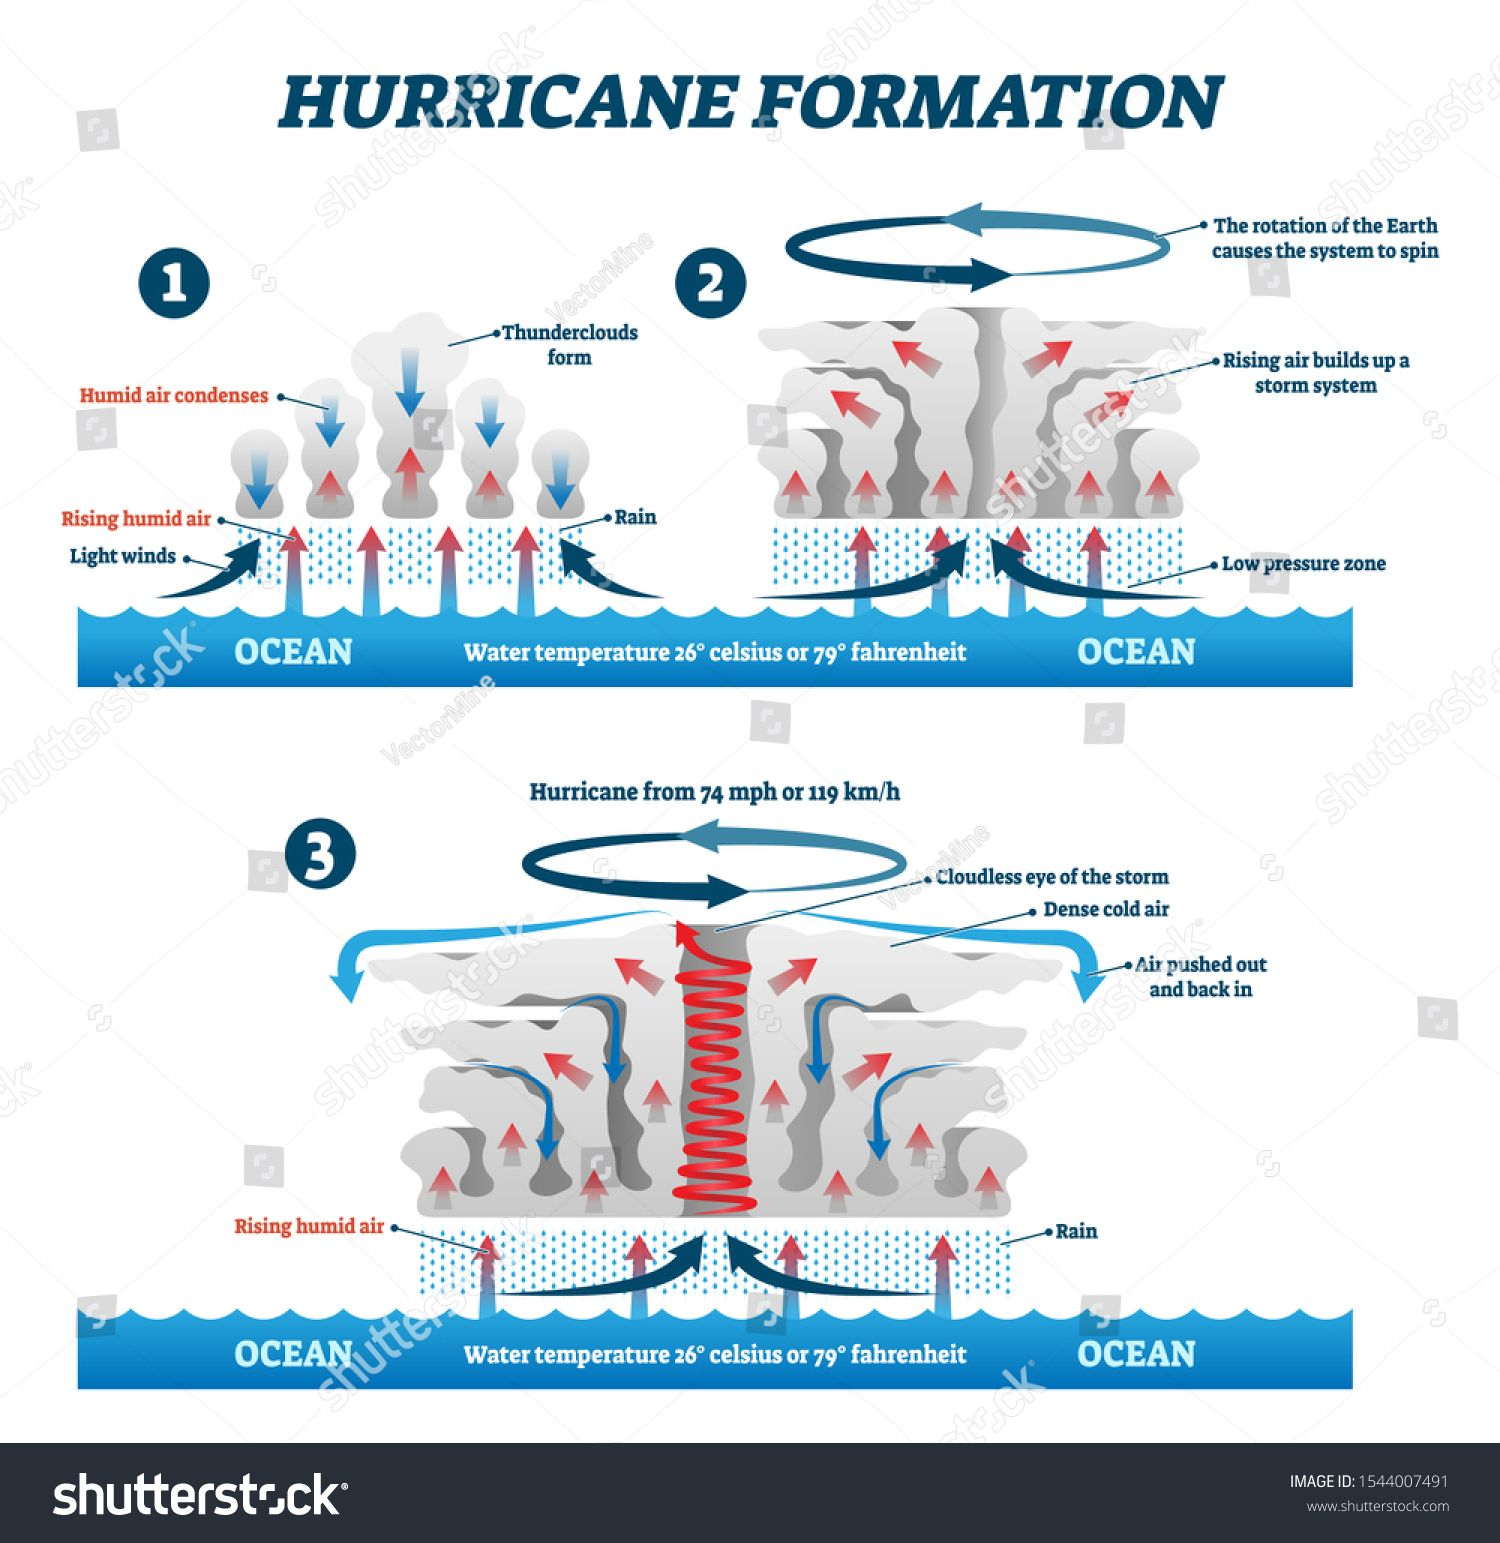 Hurricane Formation Labeled Vector Illustration Educational Wind Storm Air Movement Explanation Scheme Diagram With N Education Hurricane Vector Illustration